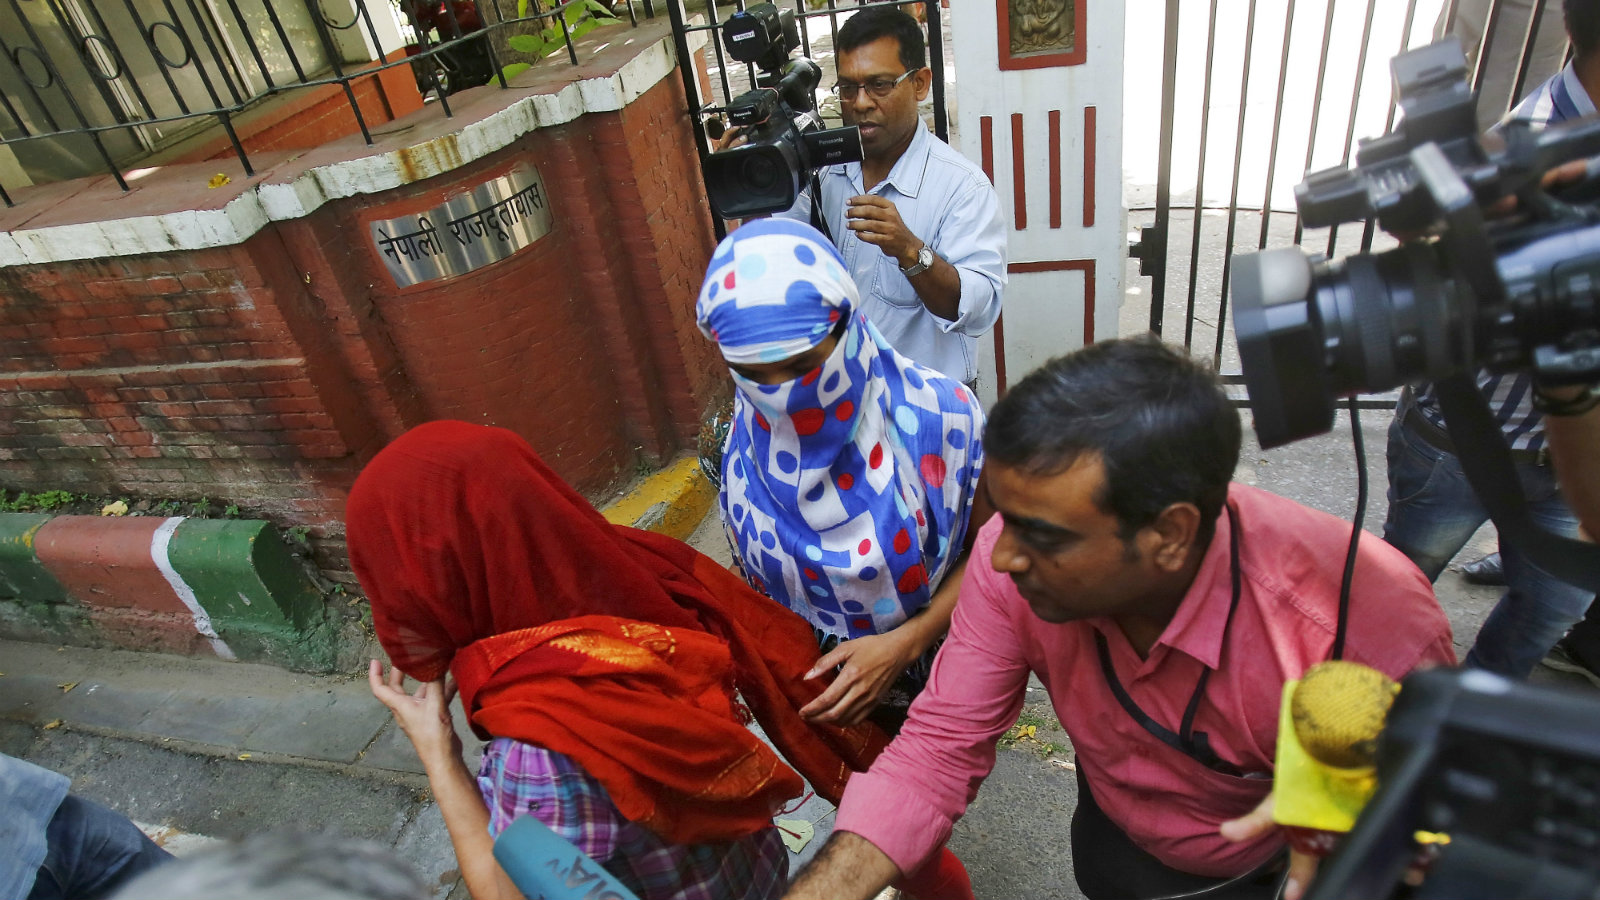 Two women who had filed rape complaints being chased by Indian media personnel in New Delhi in September 2015.